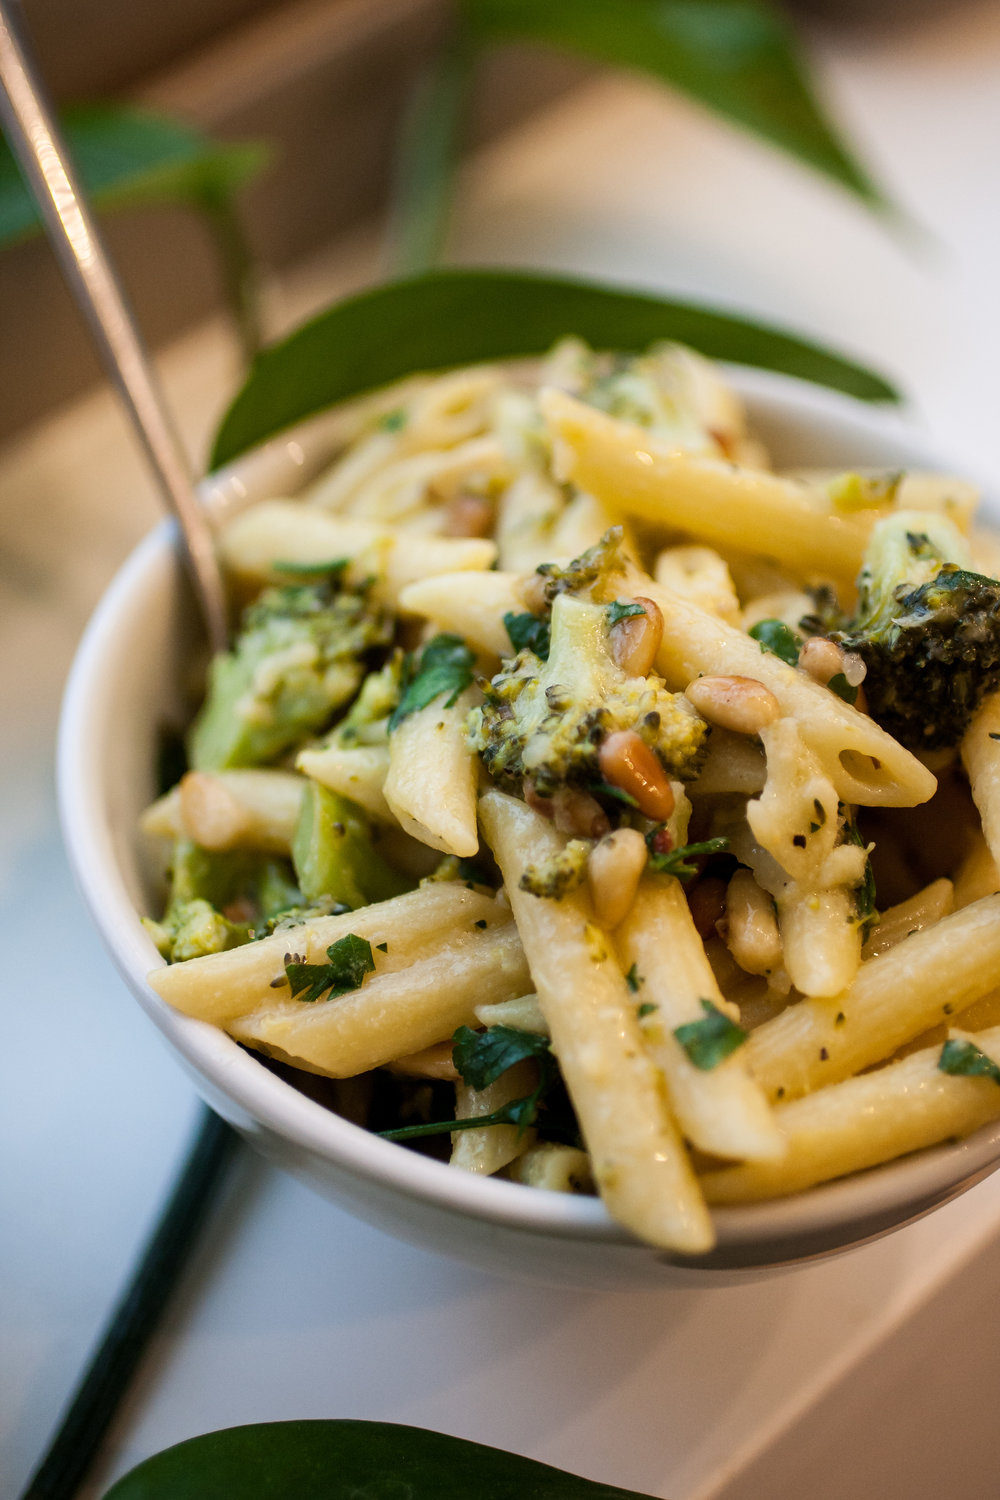 Produce On Parade - PENNE W/ BROCCOLI & MISO PINE NUT GREMOLATA + DREAMFIELDS GIVEAWAY - This bright and zesty pasta is a great way to get in some greens! Toasted pine nuts lend a unique flavor that blend excellently with par-boiled broccoli. It's lemony and earthy with plenty of umami from red miso and nutritional yeast; a plant-based protein meal sure to please the whole family and done in the time it takes to boil the noodles!